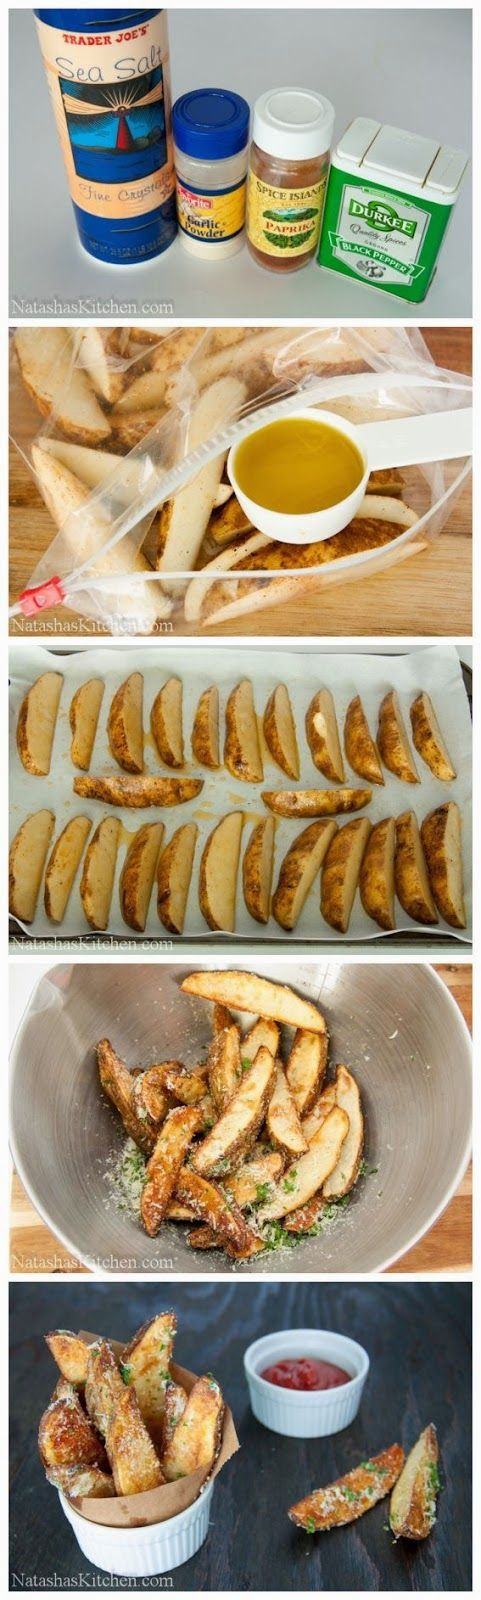 Oven Baked Potato Wedges | Food is my friend